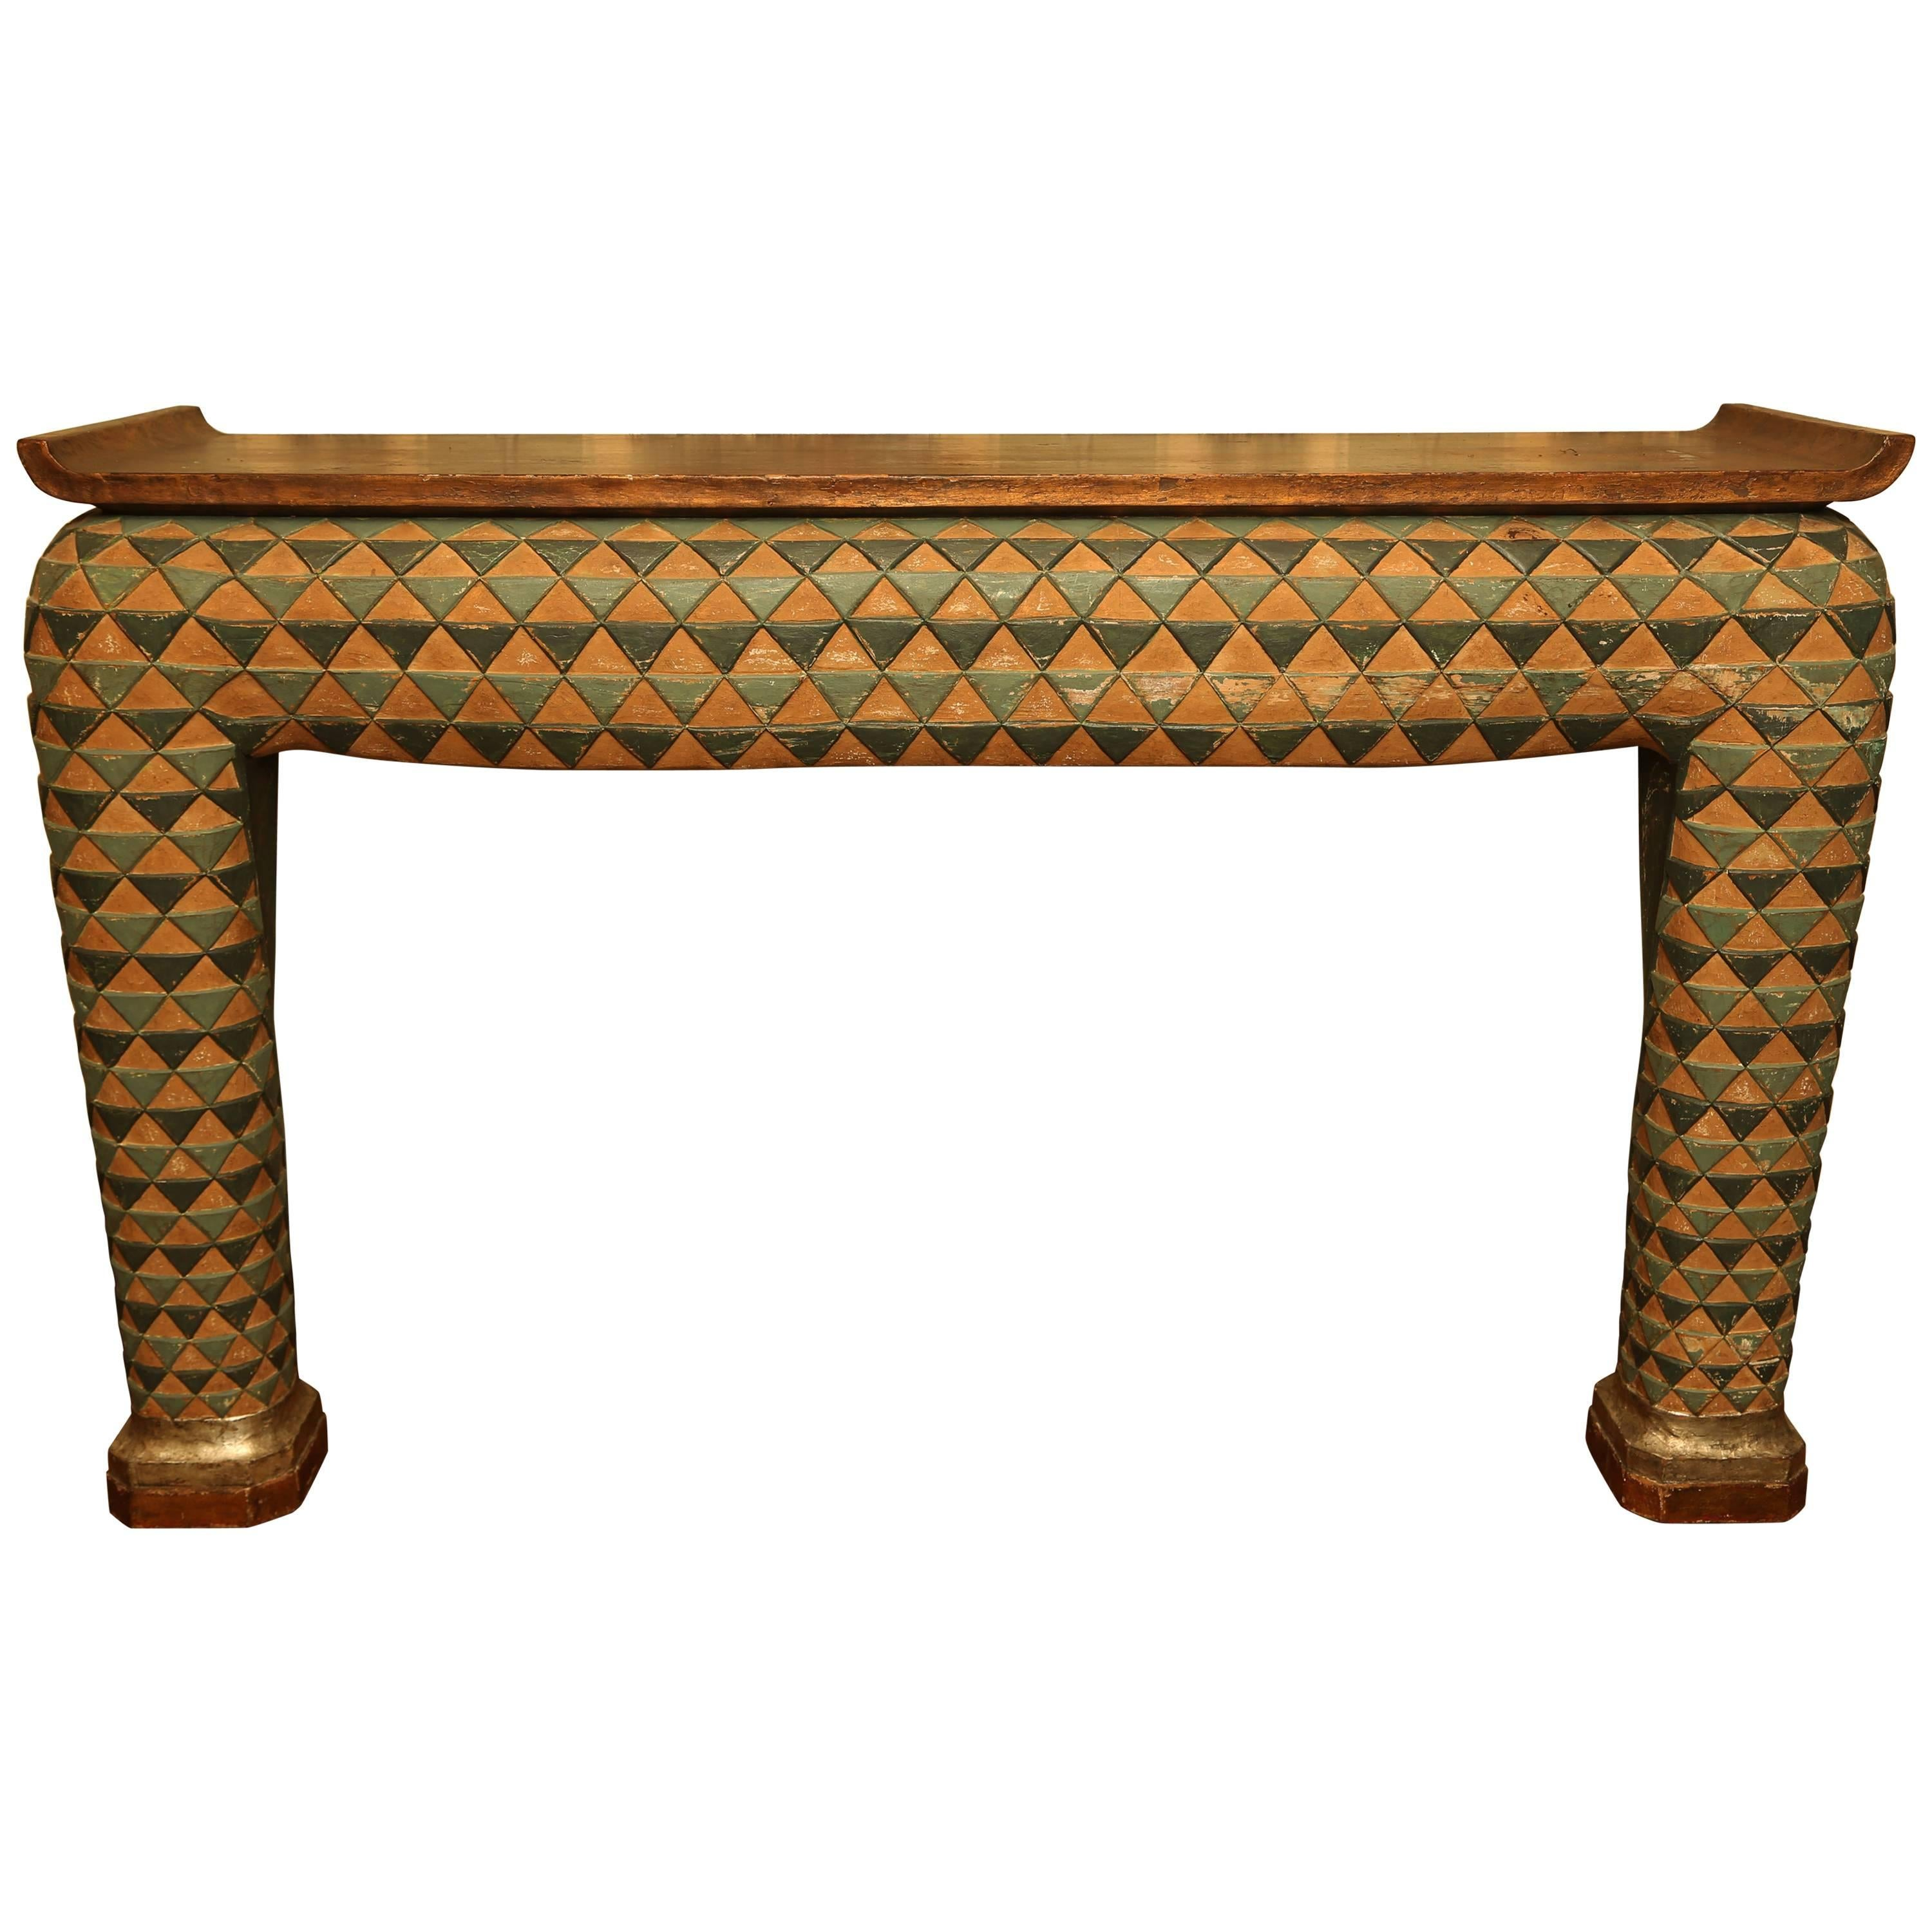 Unusual Asian Style Polychrome Plaster Console Table For Sale